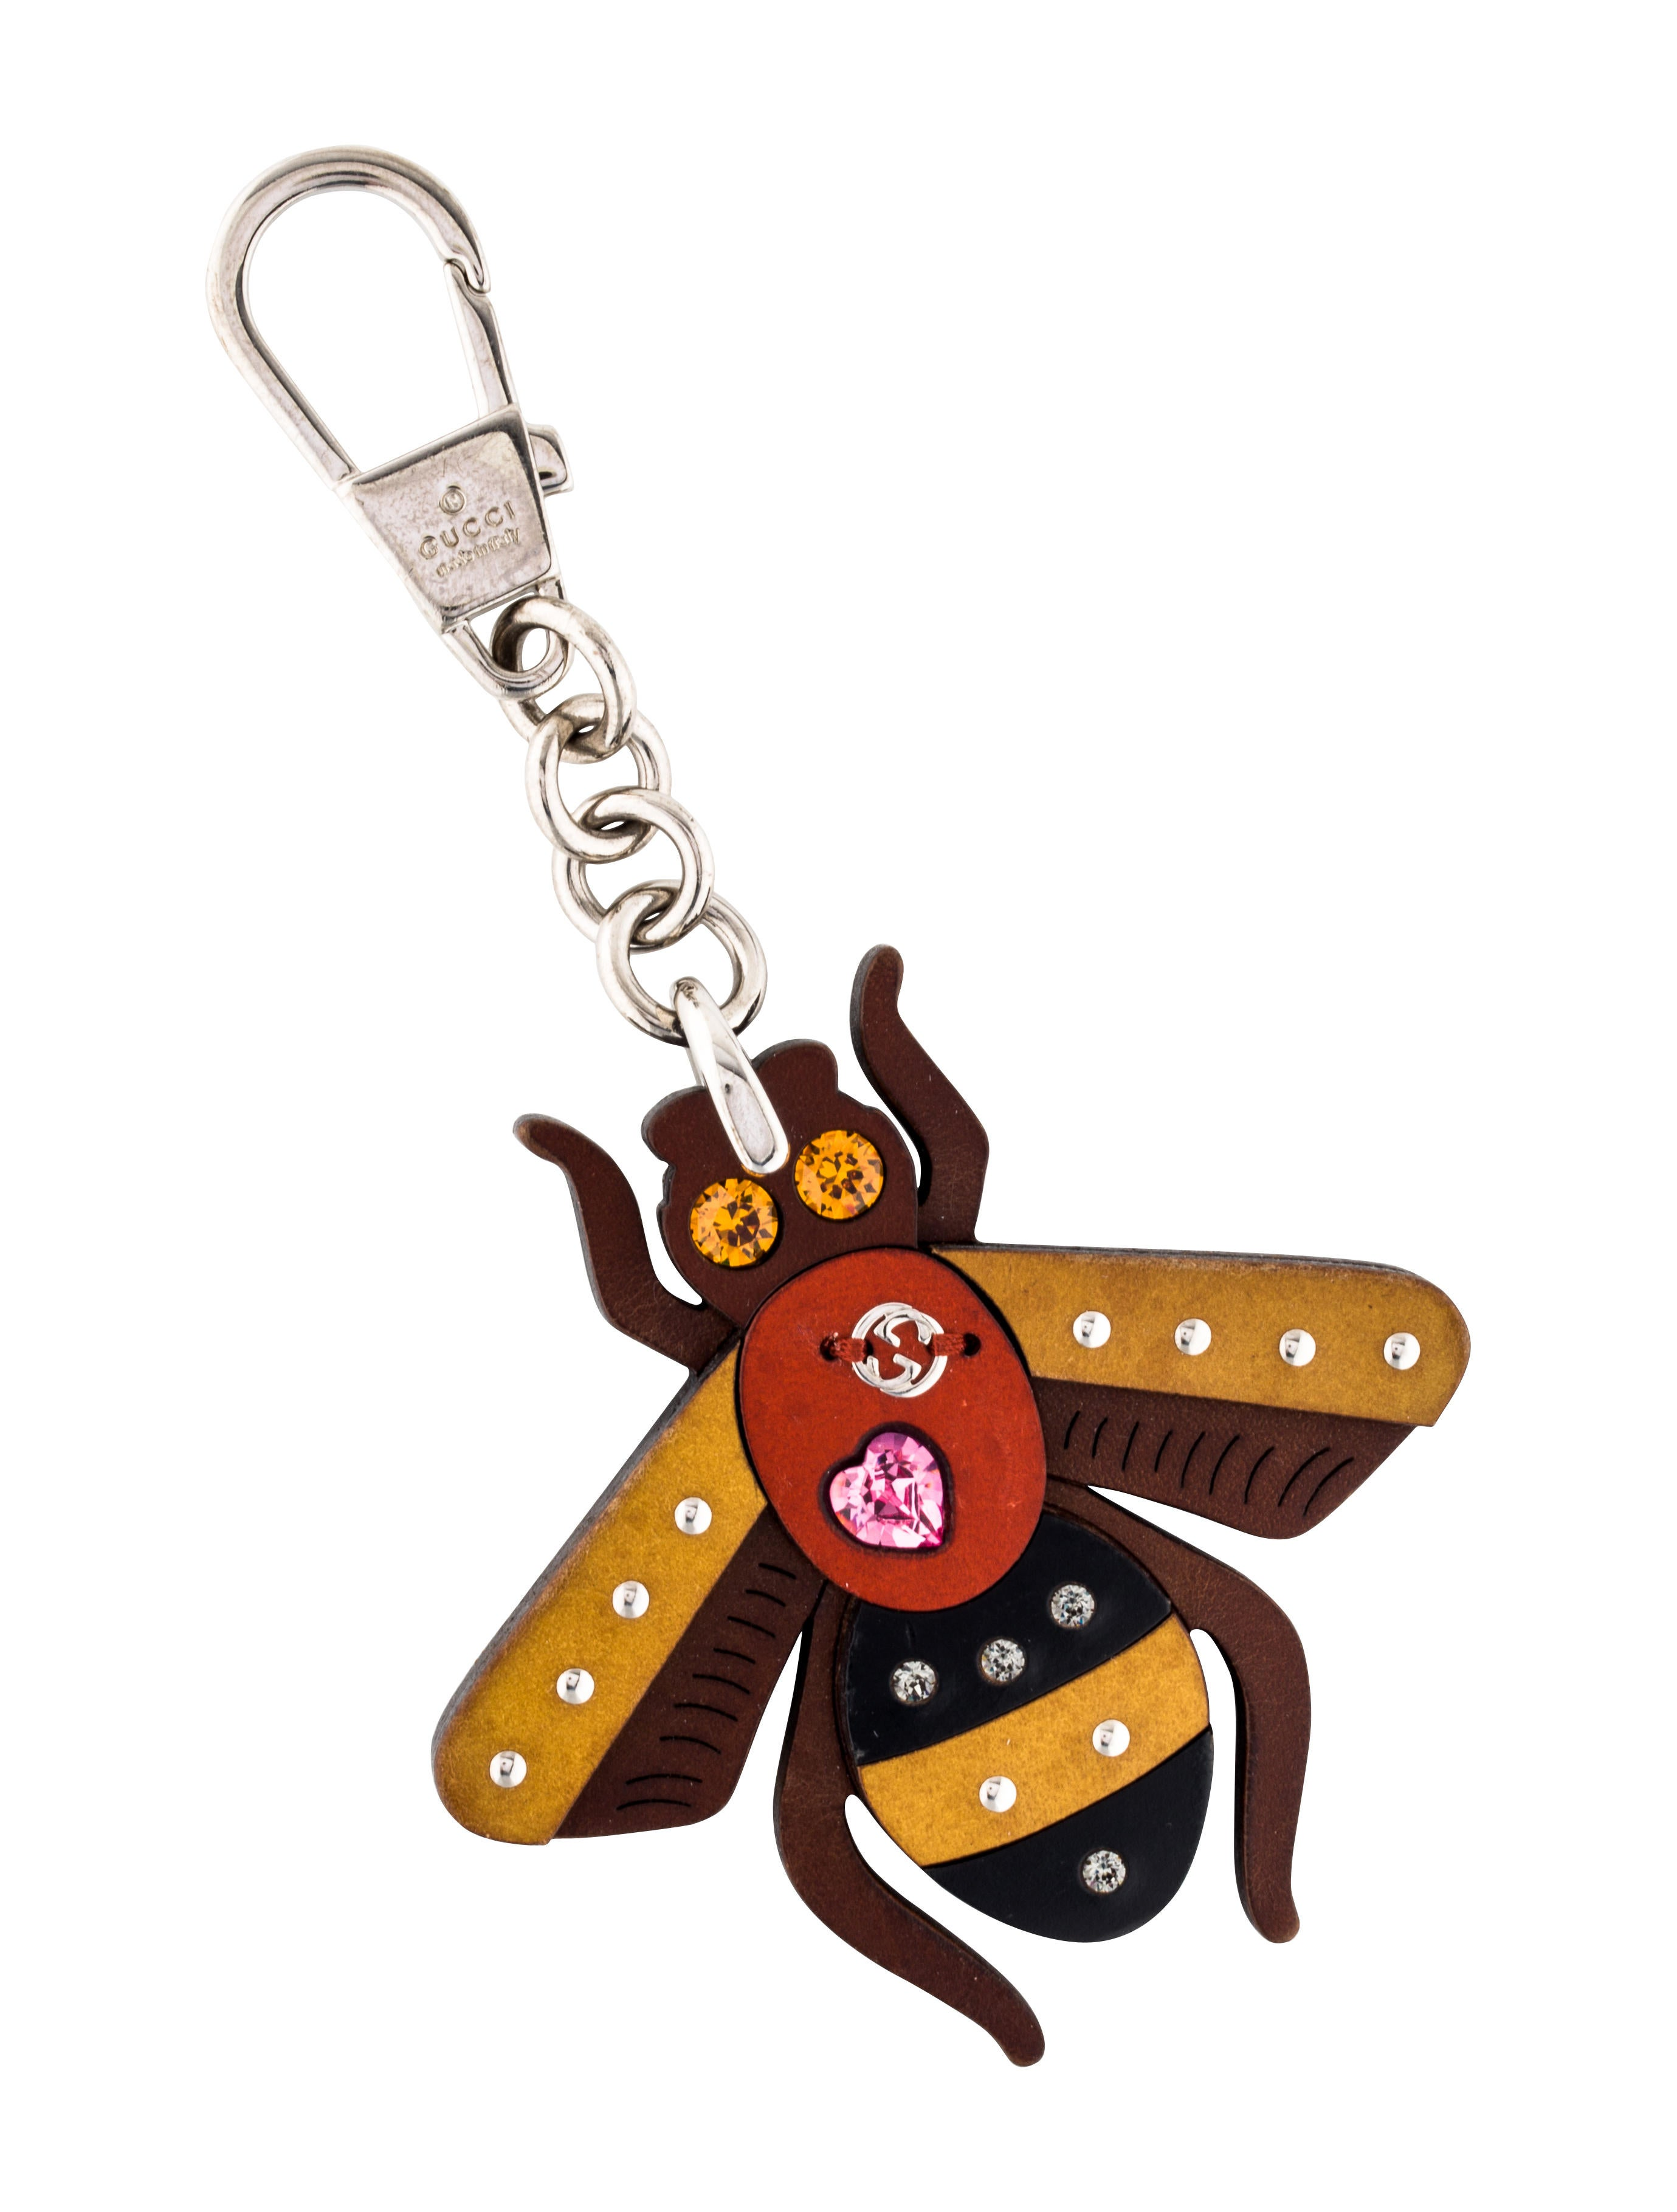 310107bbb52 Gucci Embellished Bee Bag Charm - Accessories - GUC182612